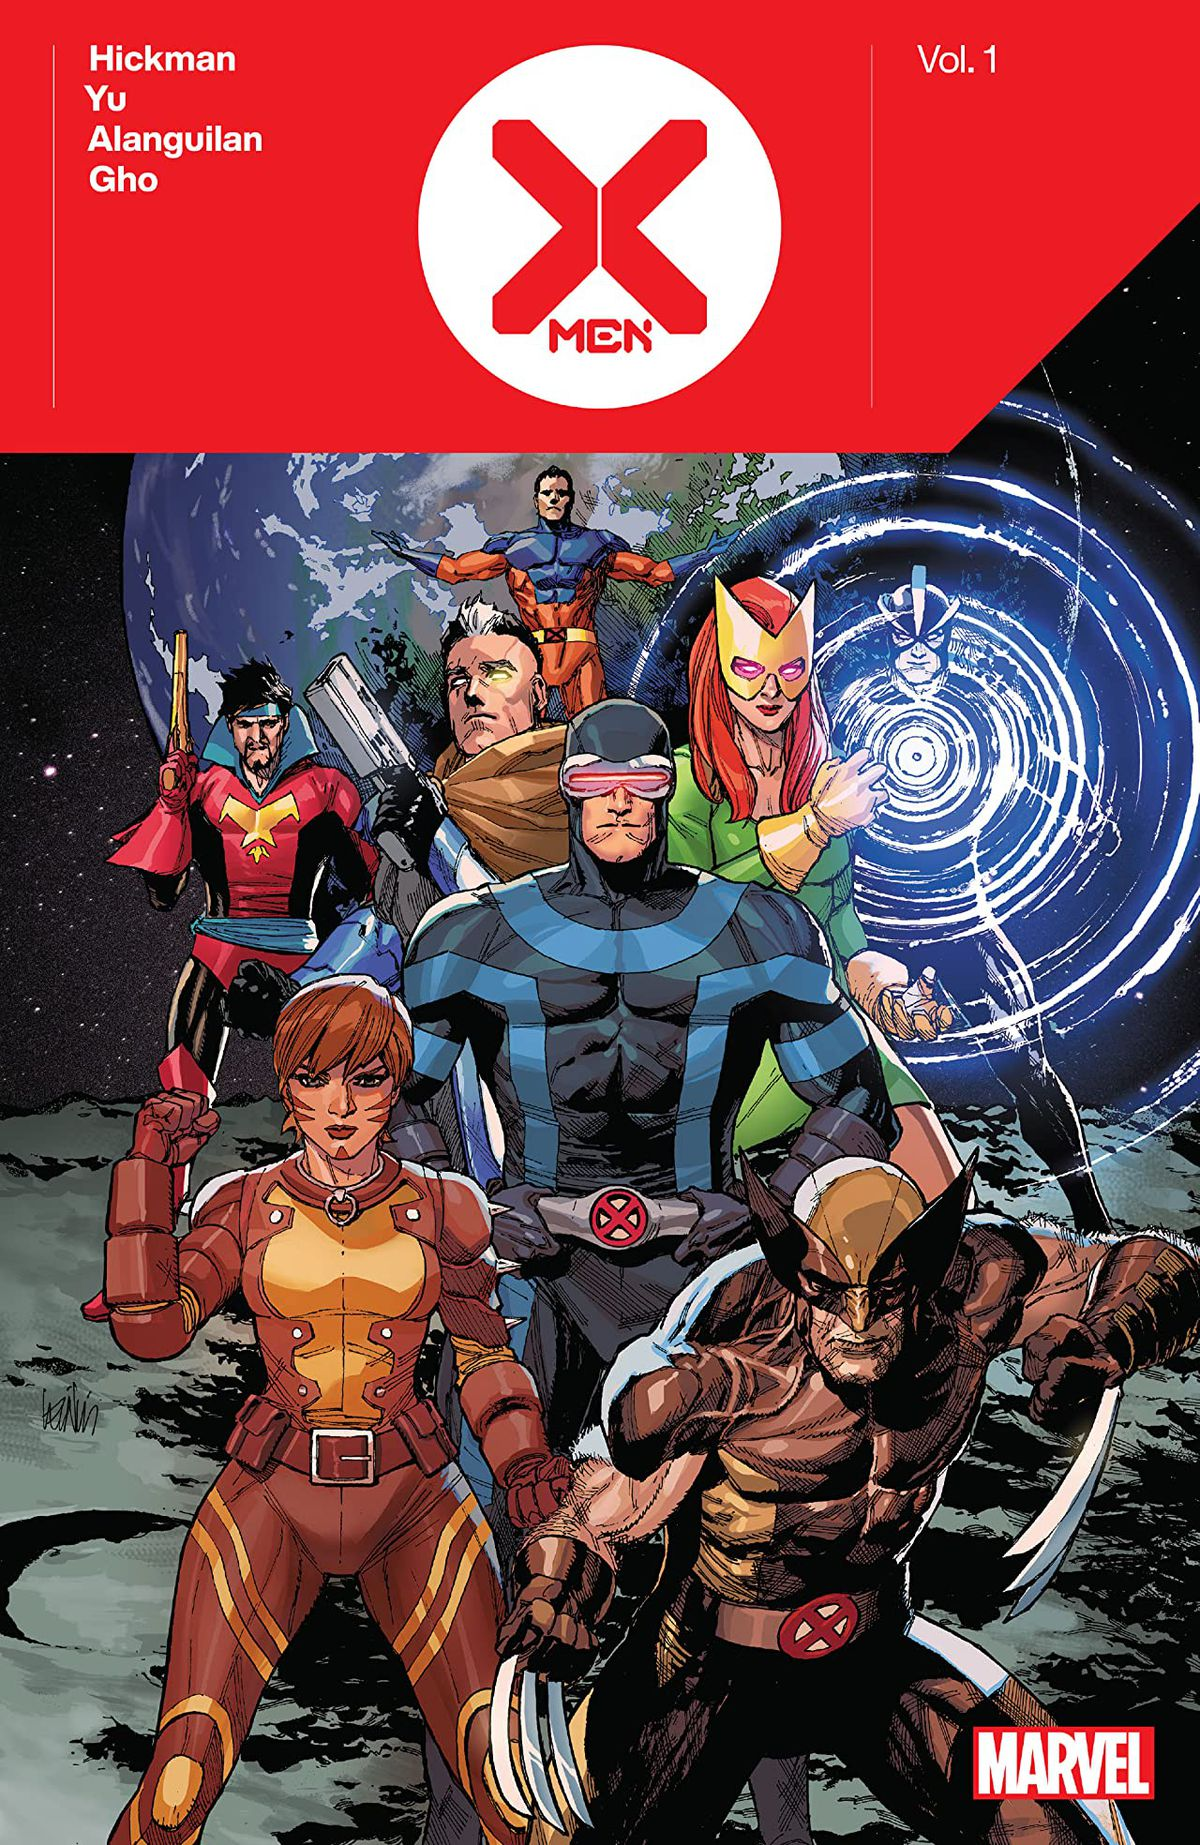 Vulcan, Corsair, Cable, Jean Grey, Havok, Cyclops, Rachel Grey, and Wolverine pose on the moon on the cover of X-Men by Jonathan Hickman Vol. 1 (2020).